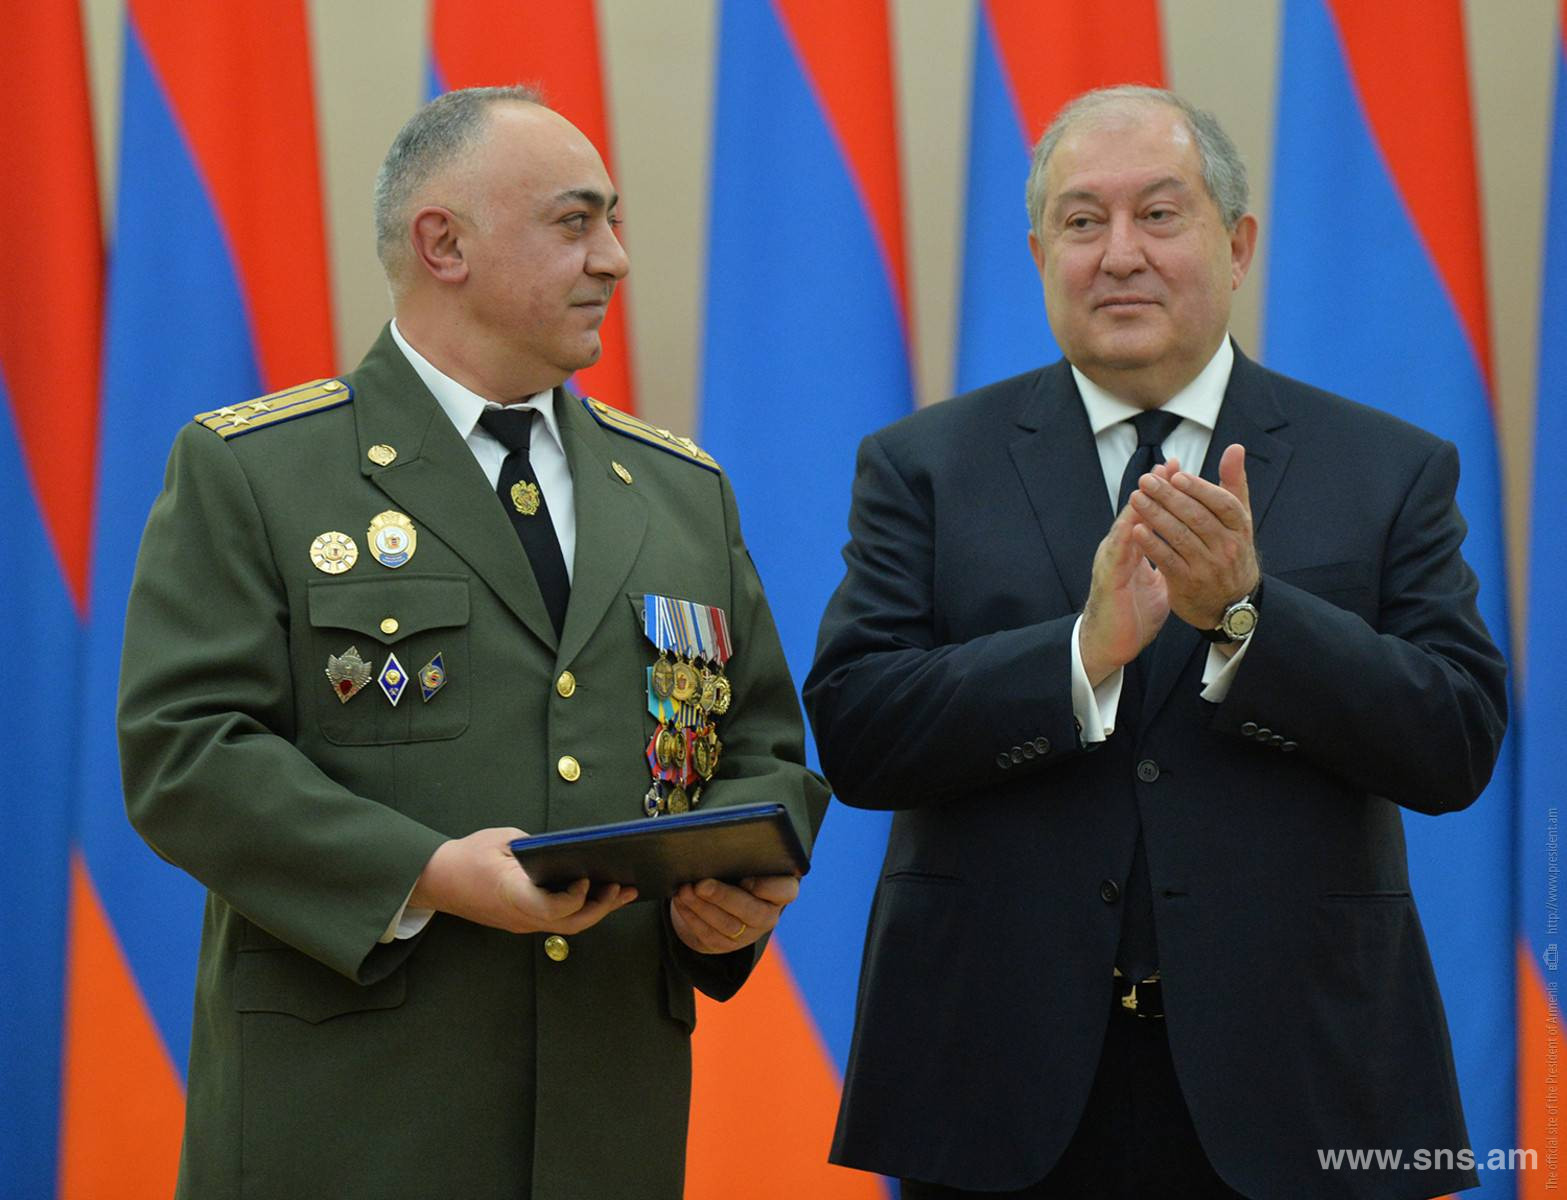 Military Rank of Major General Awarded to Colonel L. Shahumyan